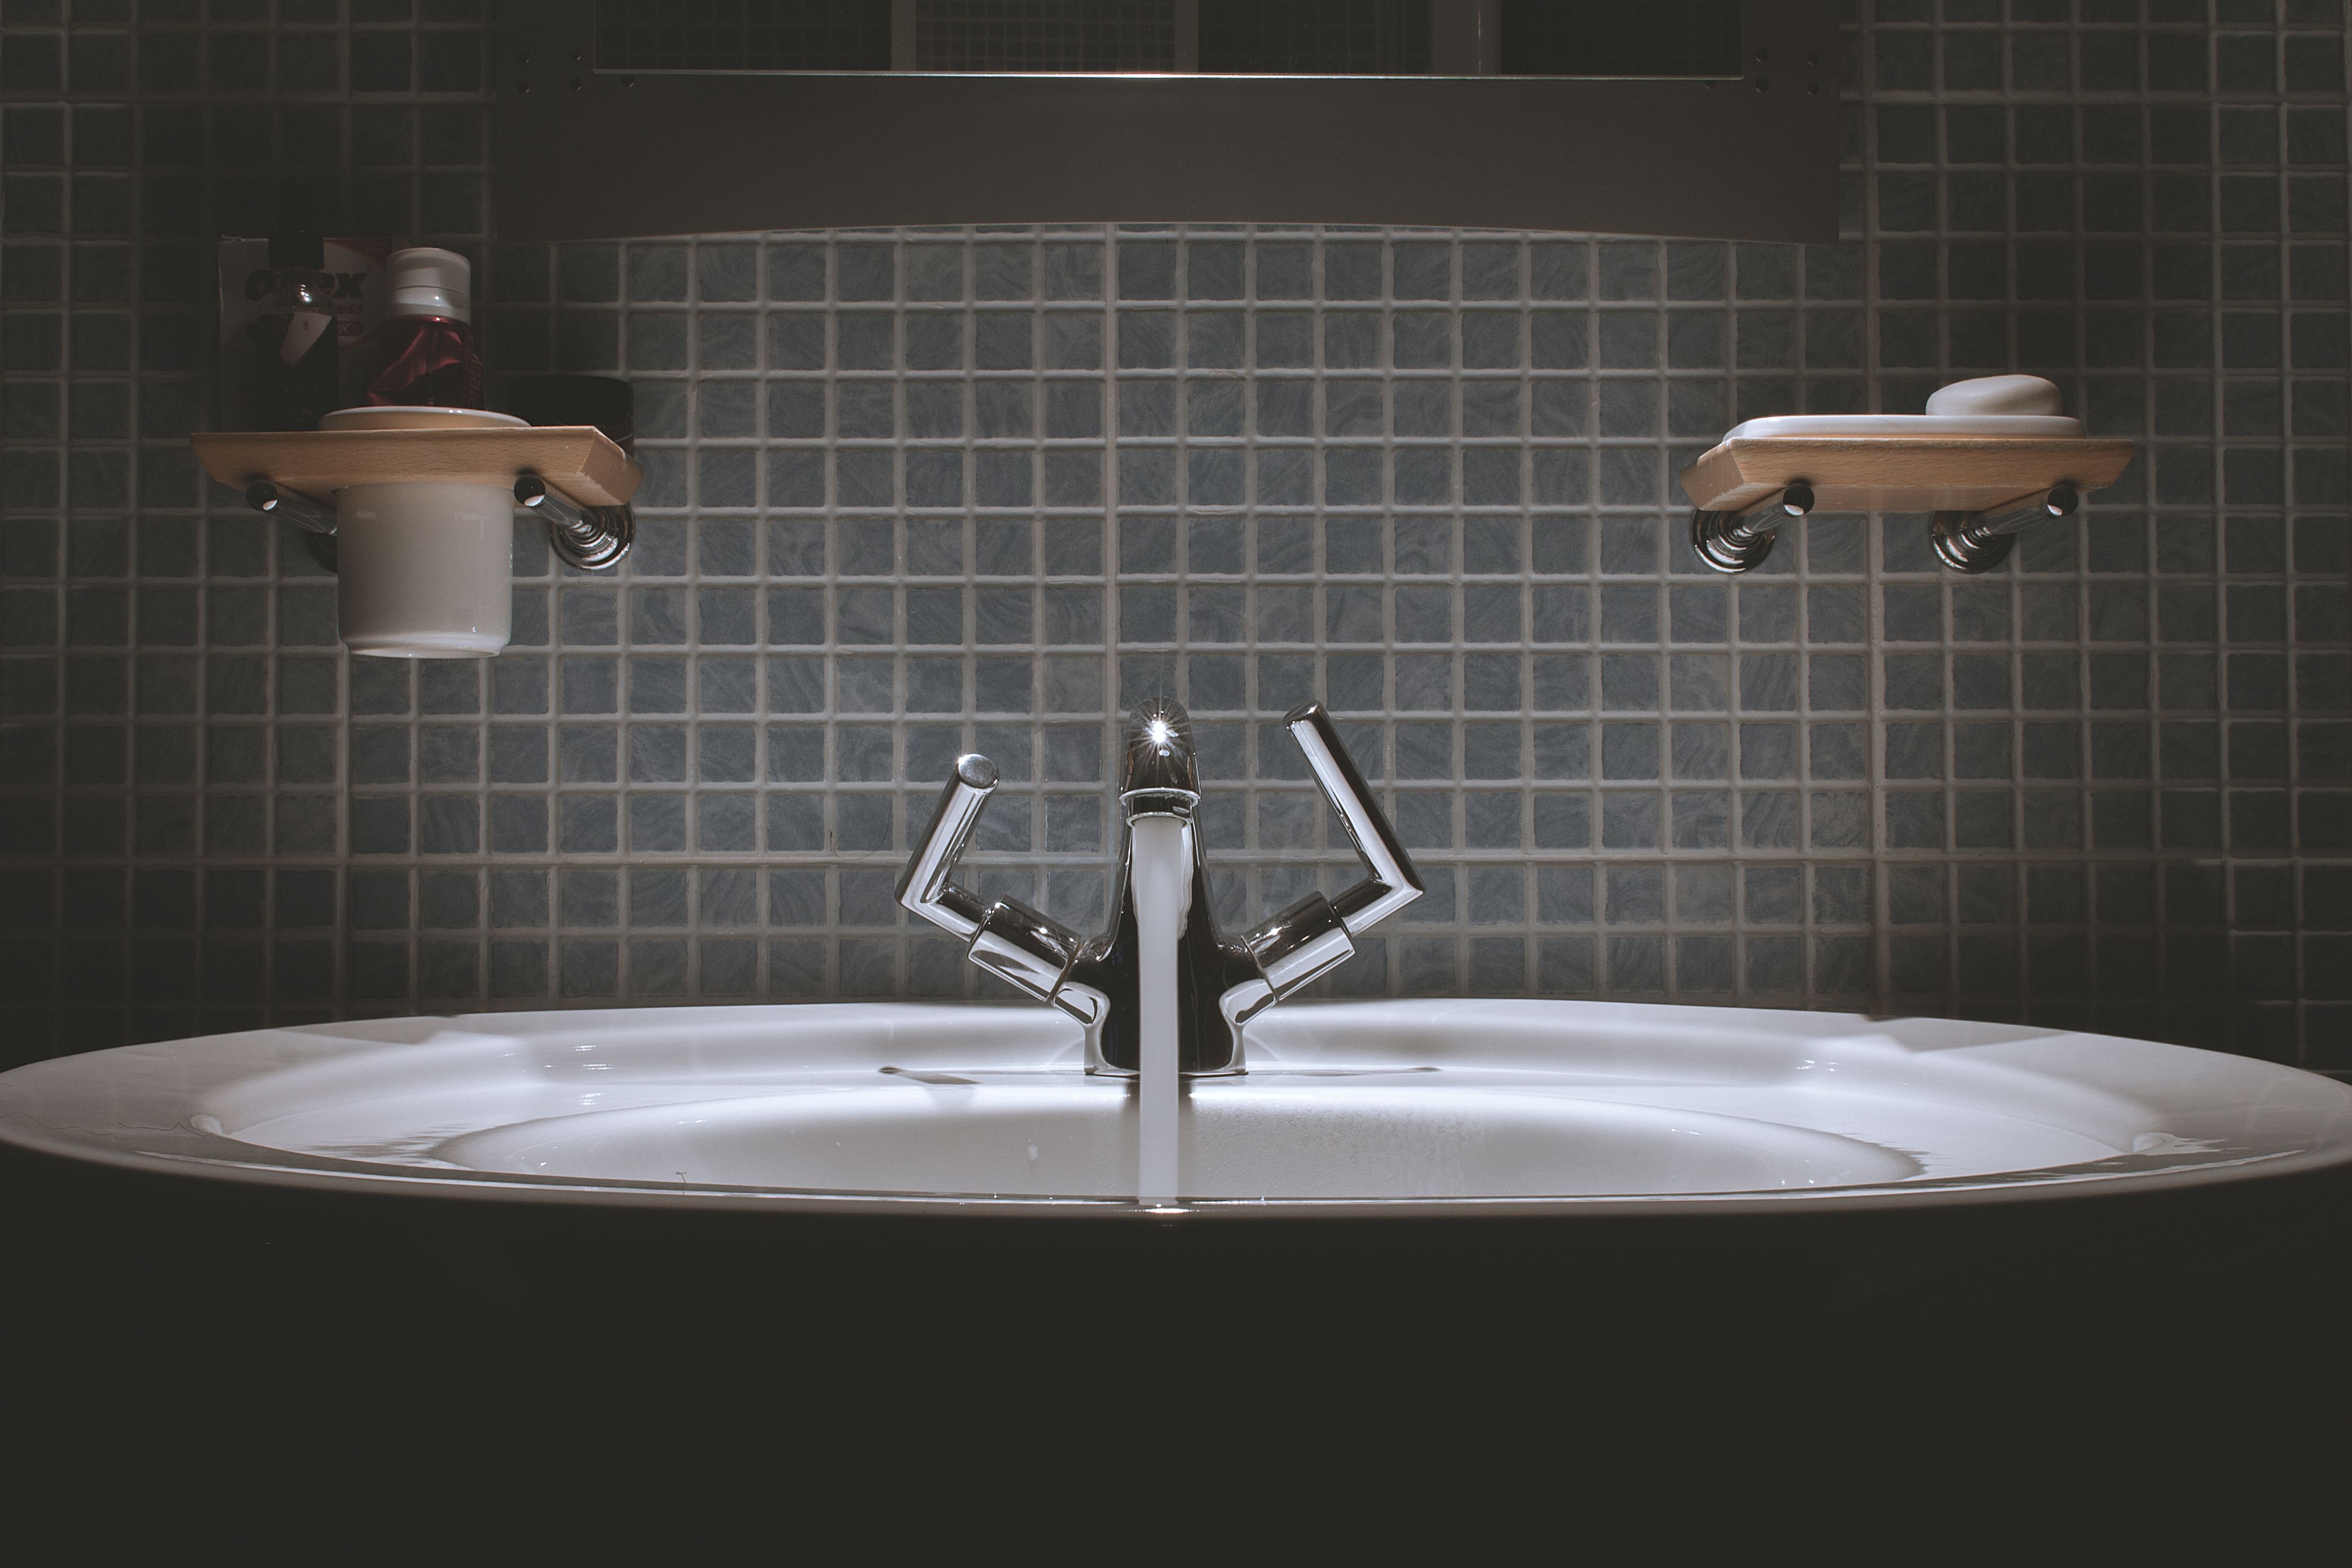 Bathroom Vanity Experts 9 awesome designs for bathroom vanity sinks - home building and